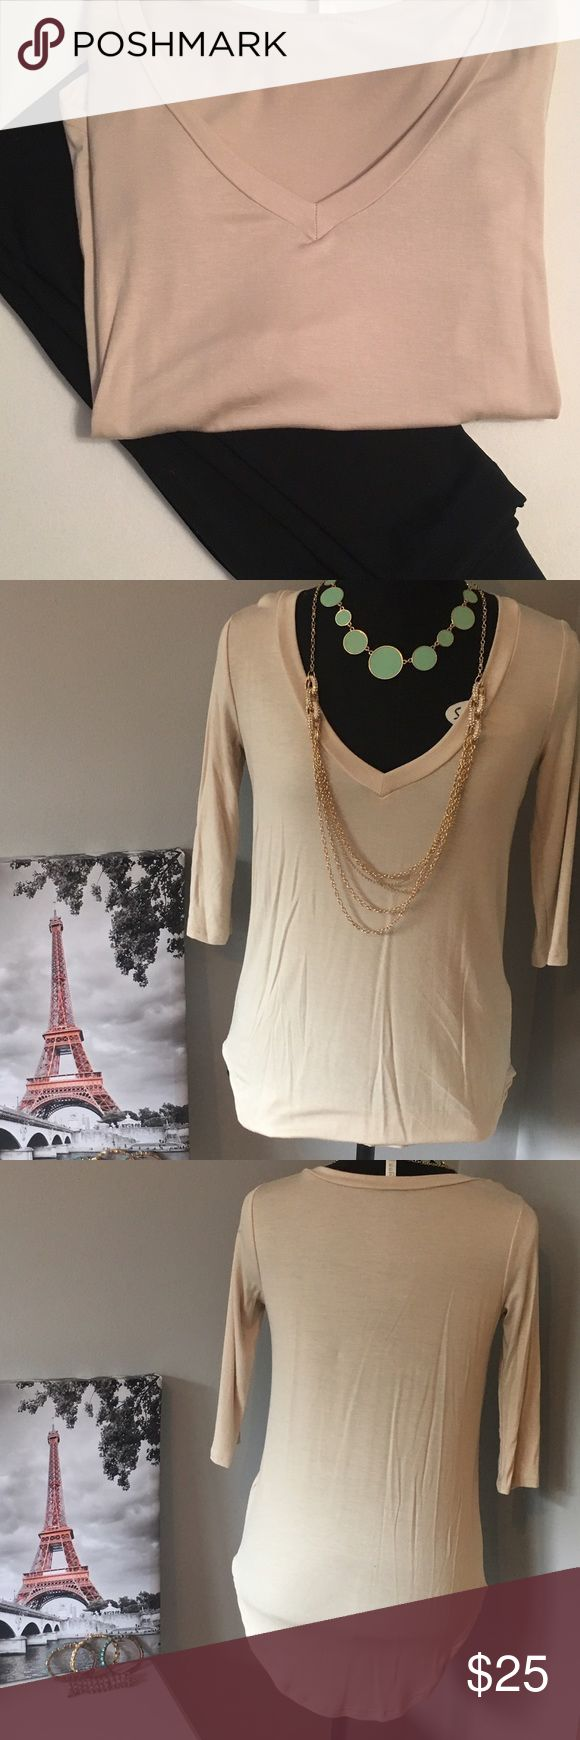 🆕Oatmeal Half Sleeve Top This is a 3quarter Sleeve Top and features a v-neck design. Oatmeal in color. Not see through but a great material for winter or spring. Pairs great with leggings. chiccouture Tops Blouses